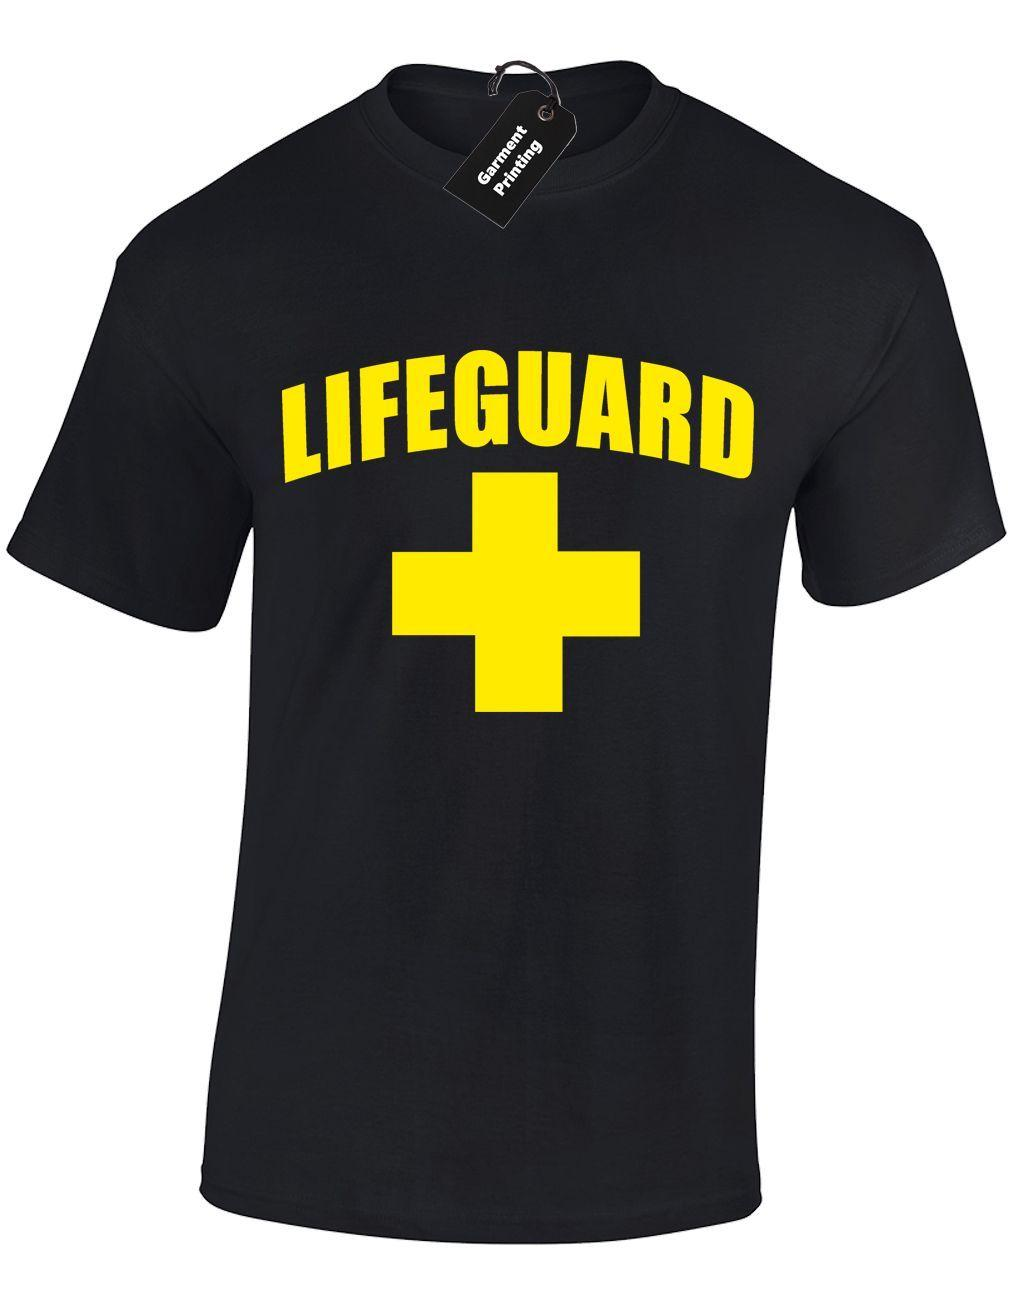 LIFEGUARD MENS T SHIRT FUNNY DESIGN FANCY DRESS BAYWATCH BEACH STAG PARTY TEE Cool Casual pride t shirt men Unisex New Fashion